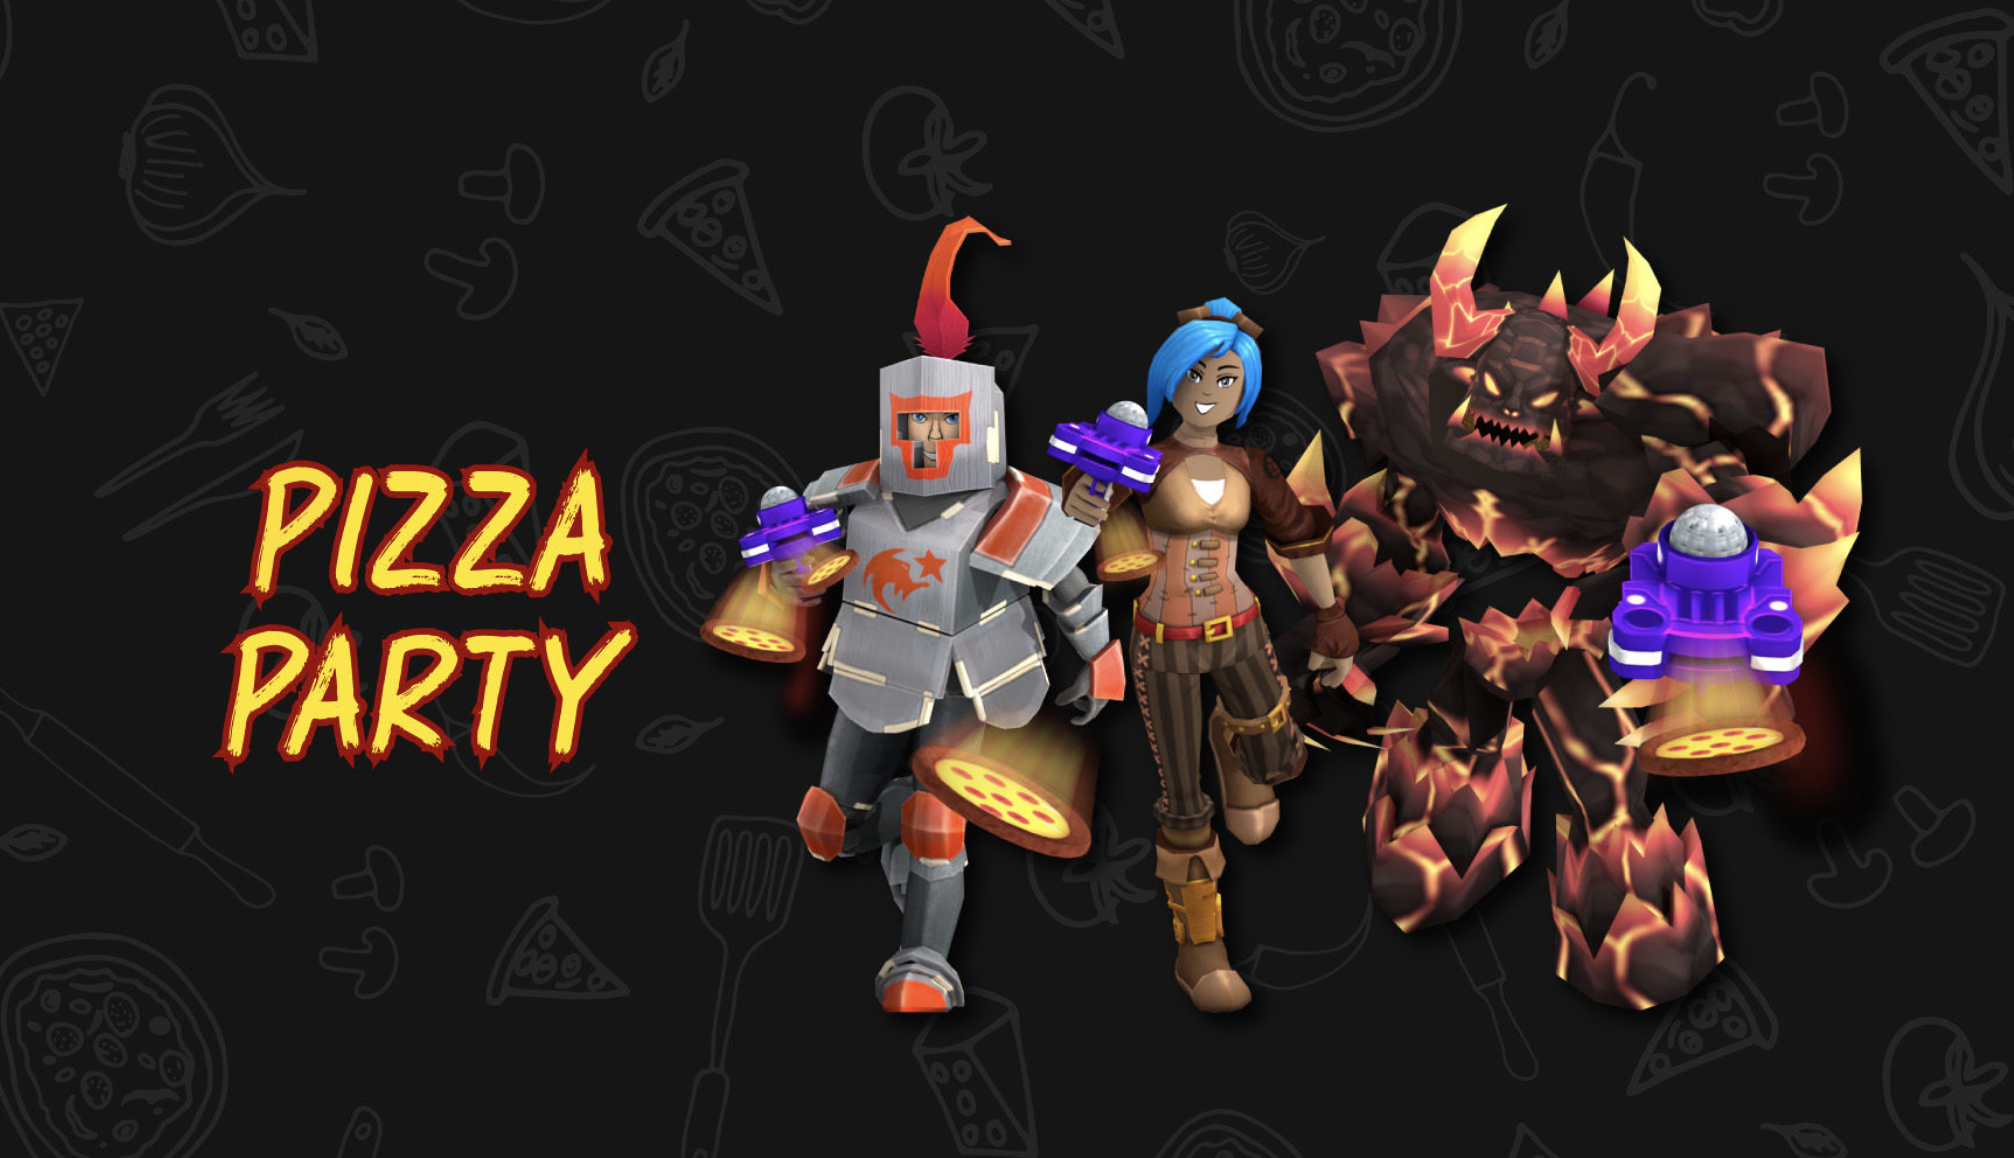 roblox, pizza, party, event, guide, how, to, get, boombox, backpack, piñata, hat, watermelon, wings, rare, rewards, prizes, mohawk, disco, ball, helmet, purple, afro